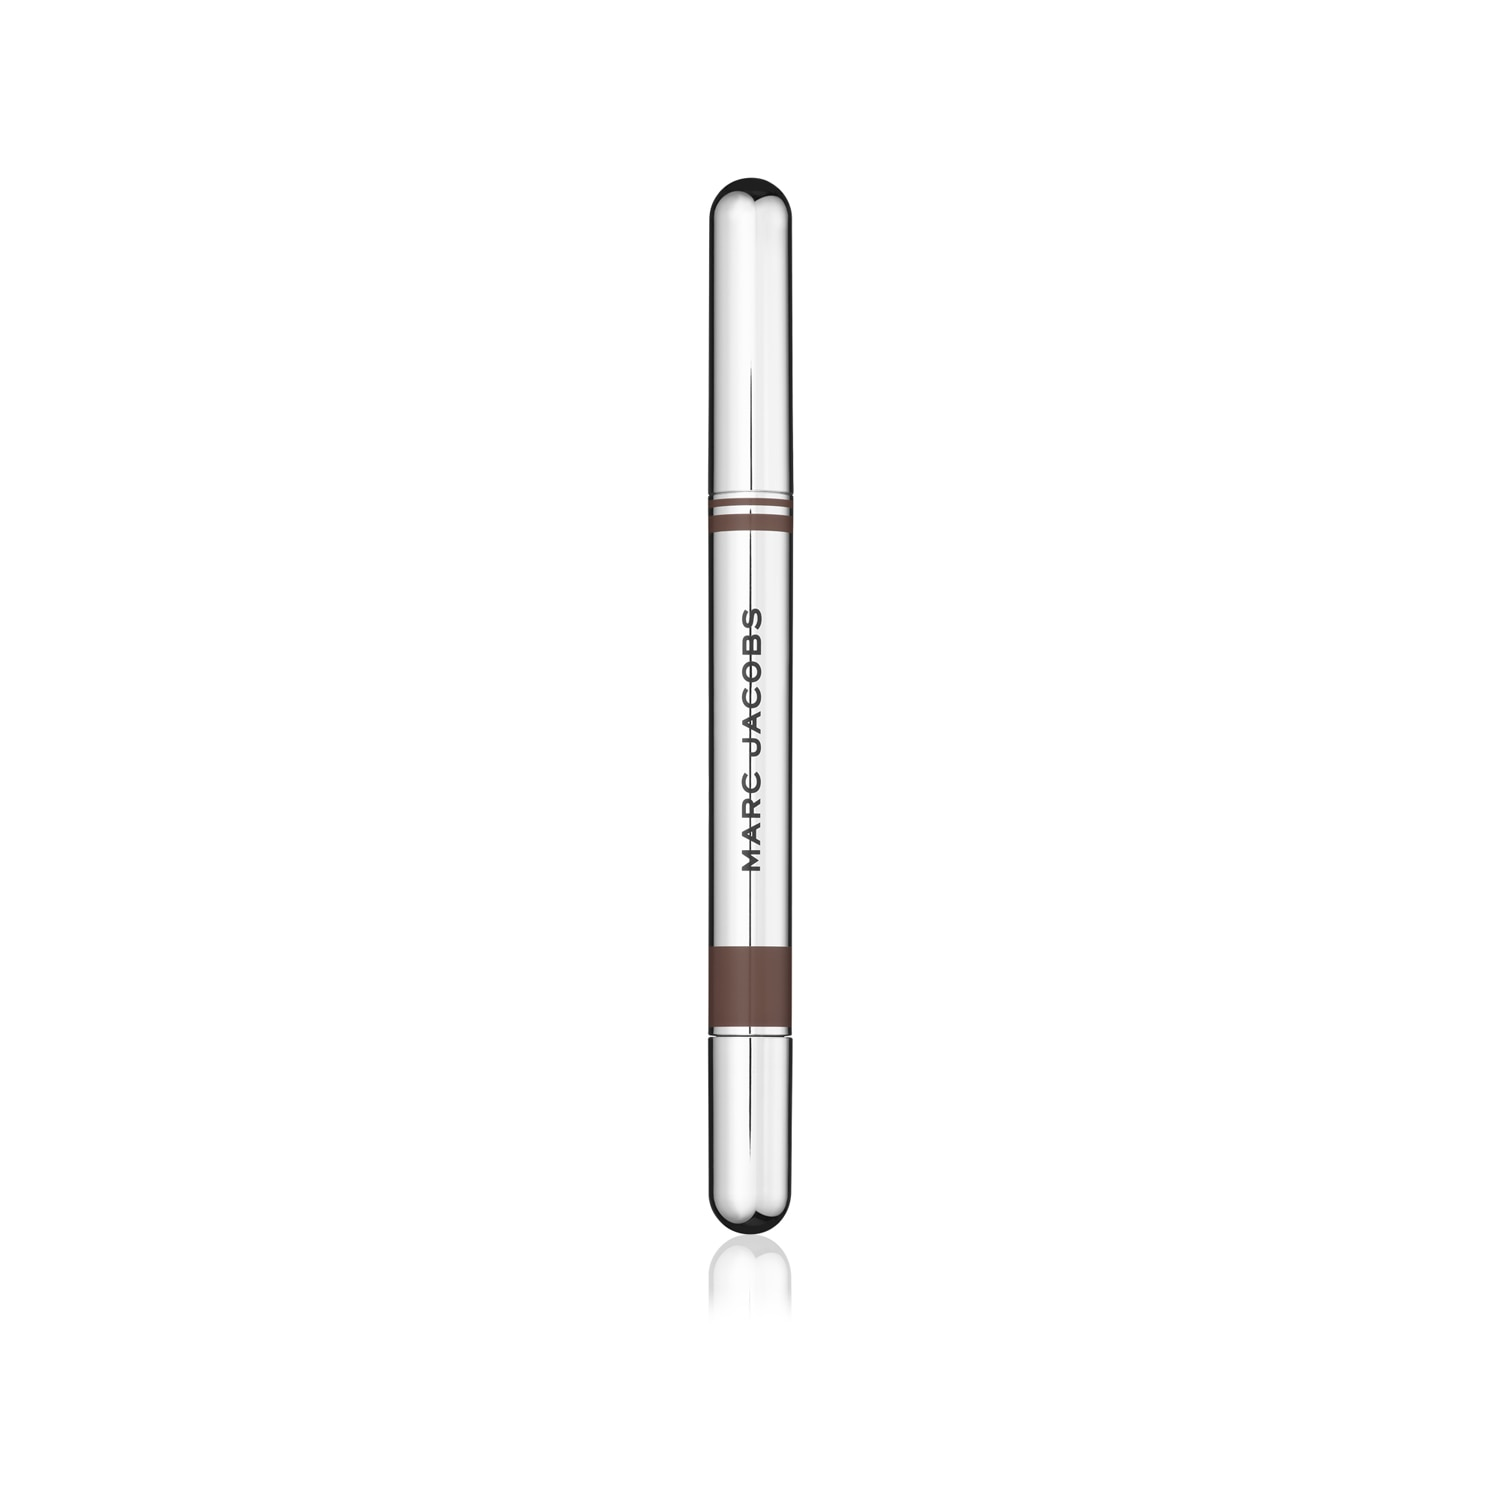 BROW WOW DUO BROW POWDER PENCIL AND TINTED GEL (+ 1 PENCIL REFILL)